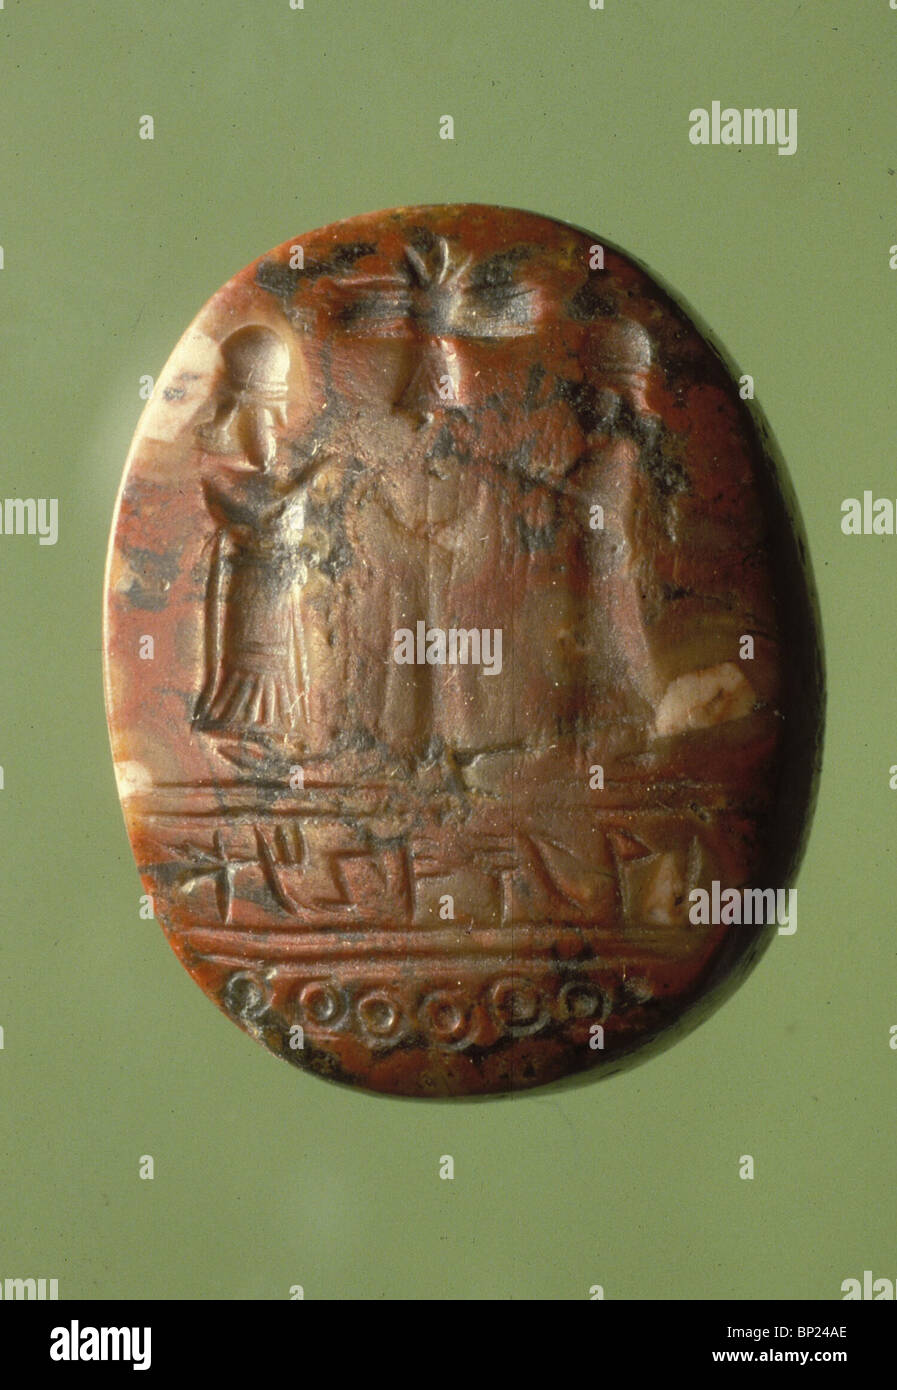 460. JASPER SEAL BEARING THE INSCRIPTION 'AMOS THE SCRIBE' DATING FROM 8-7TH. C. BC. ' - Stock Image